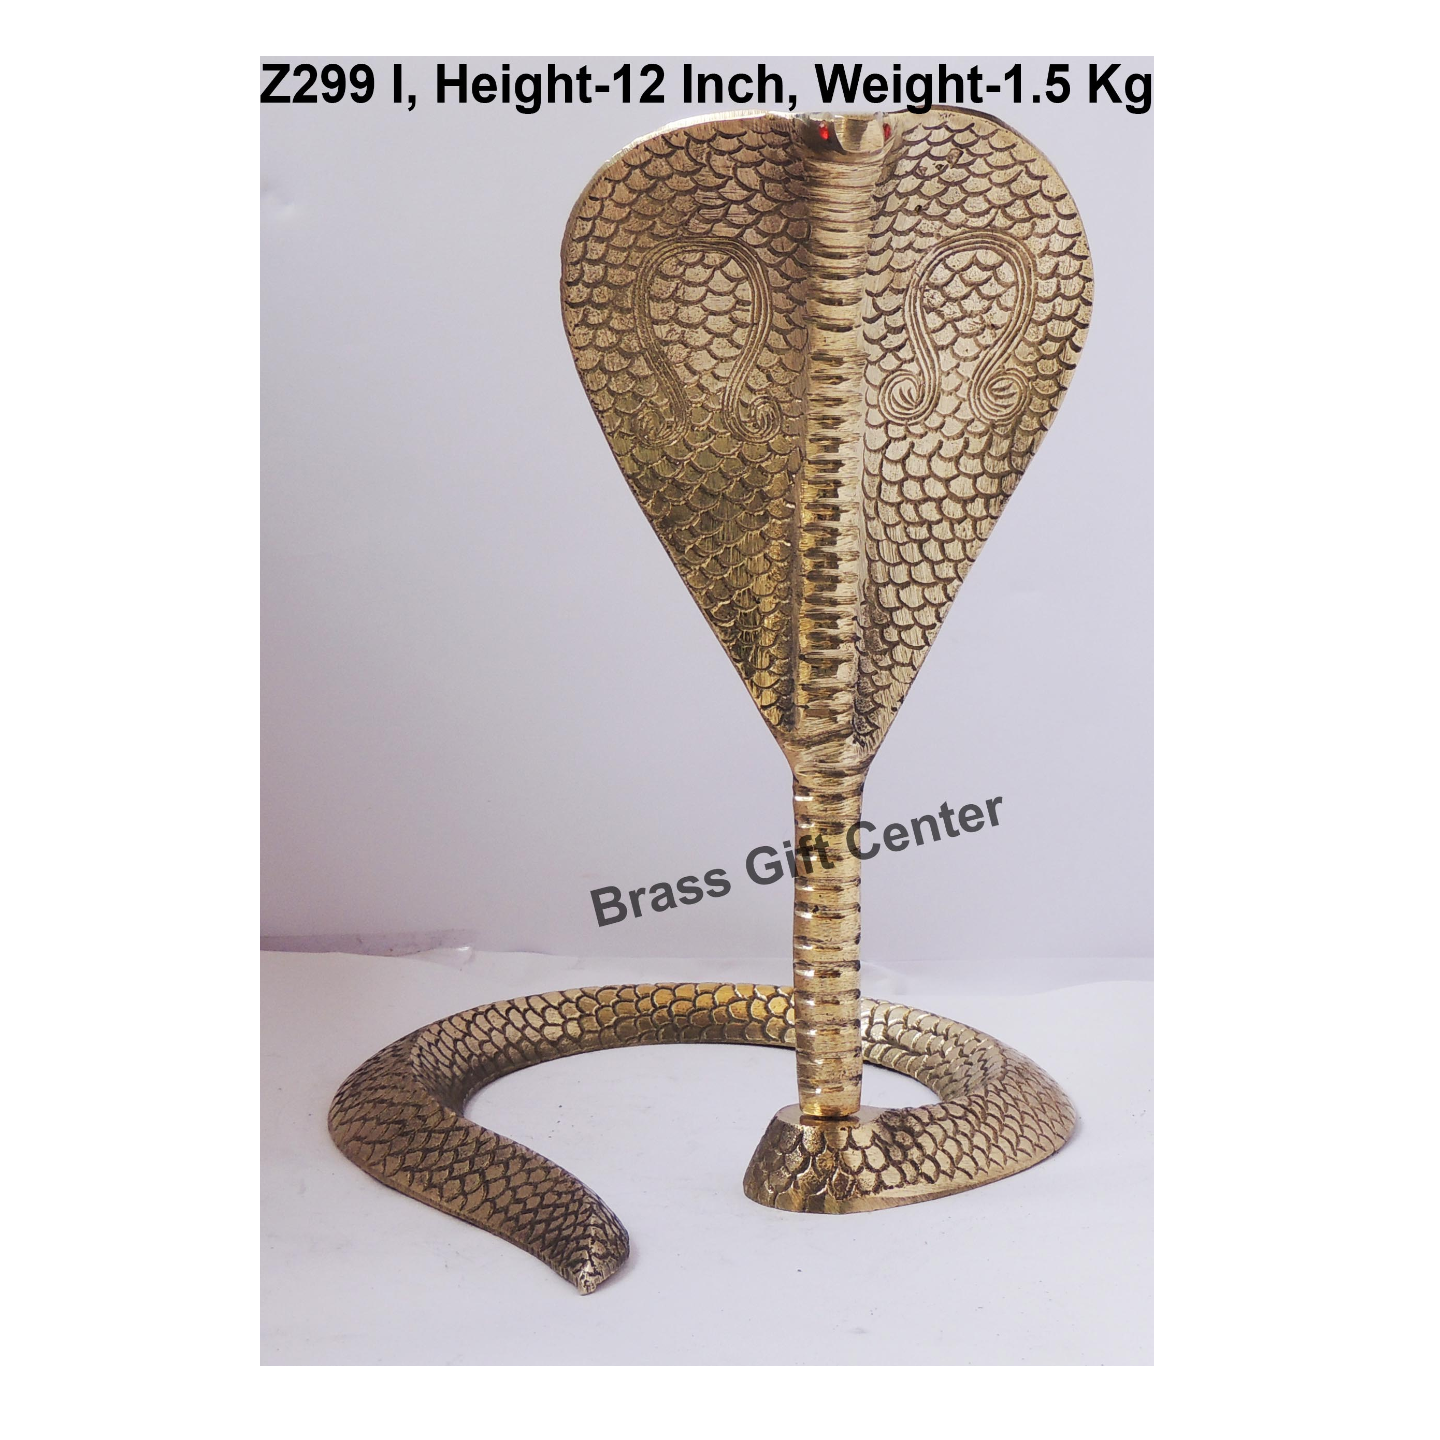 Brass Snake Saap For Shivling - 9.5*10.5*12 Inch  (Z299 I)